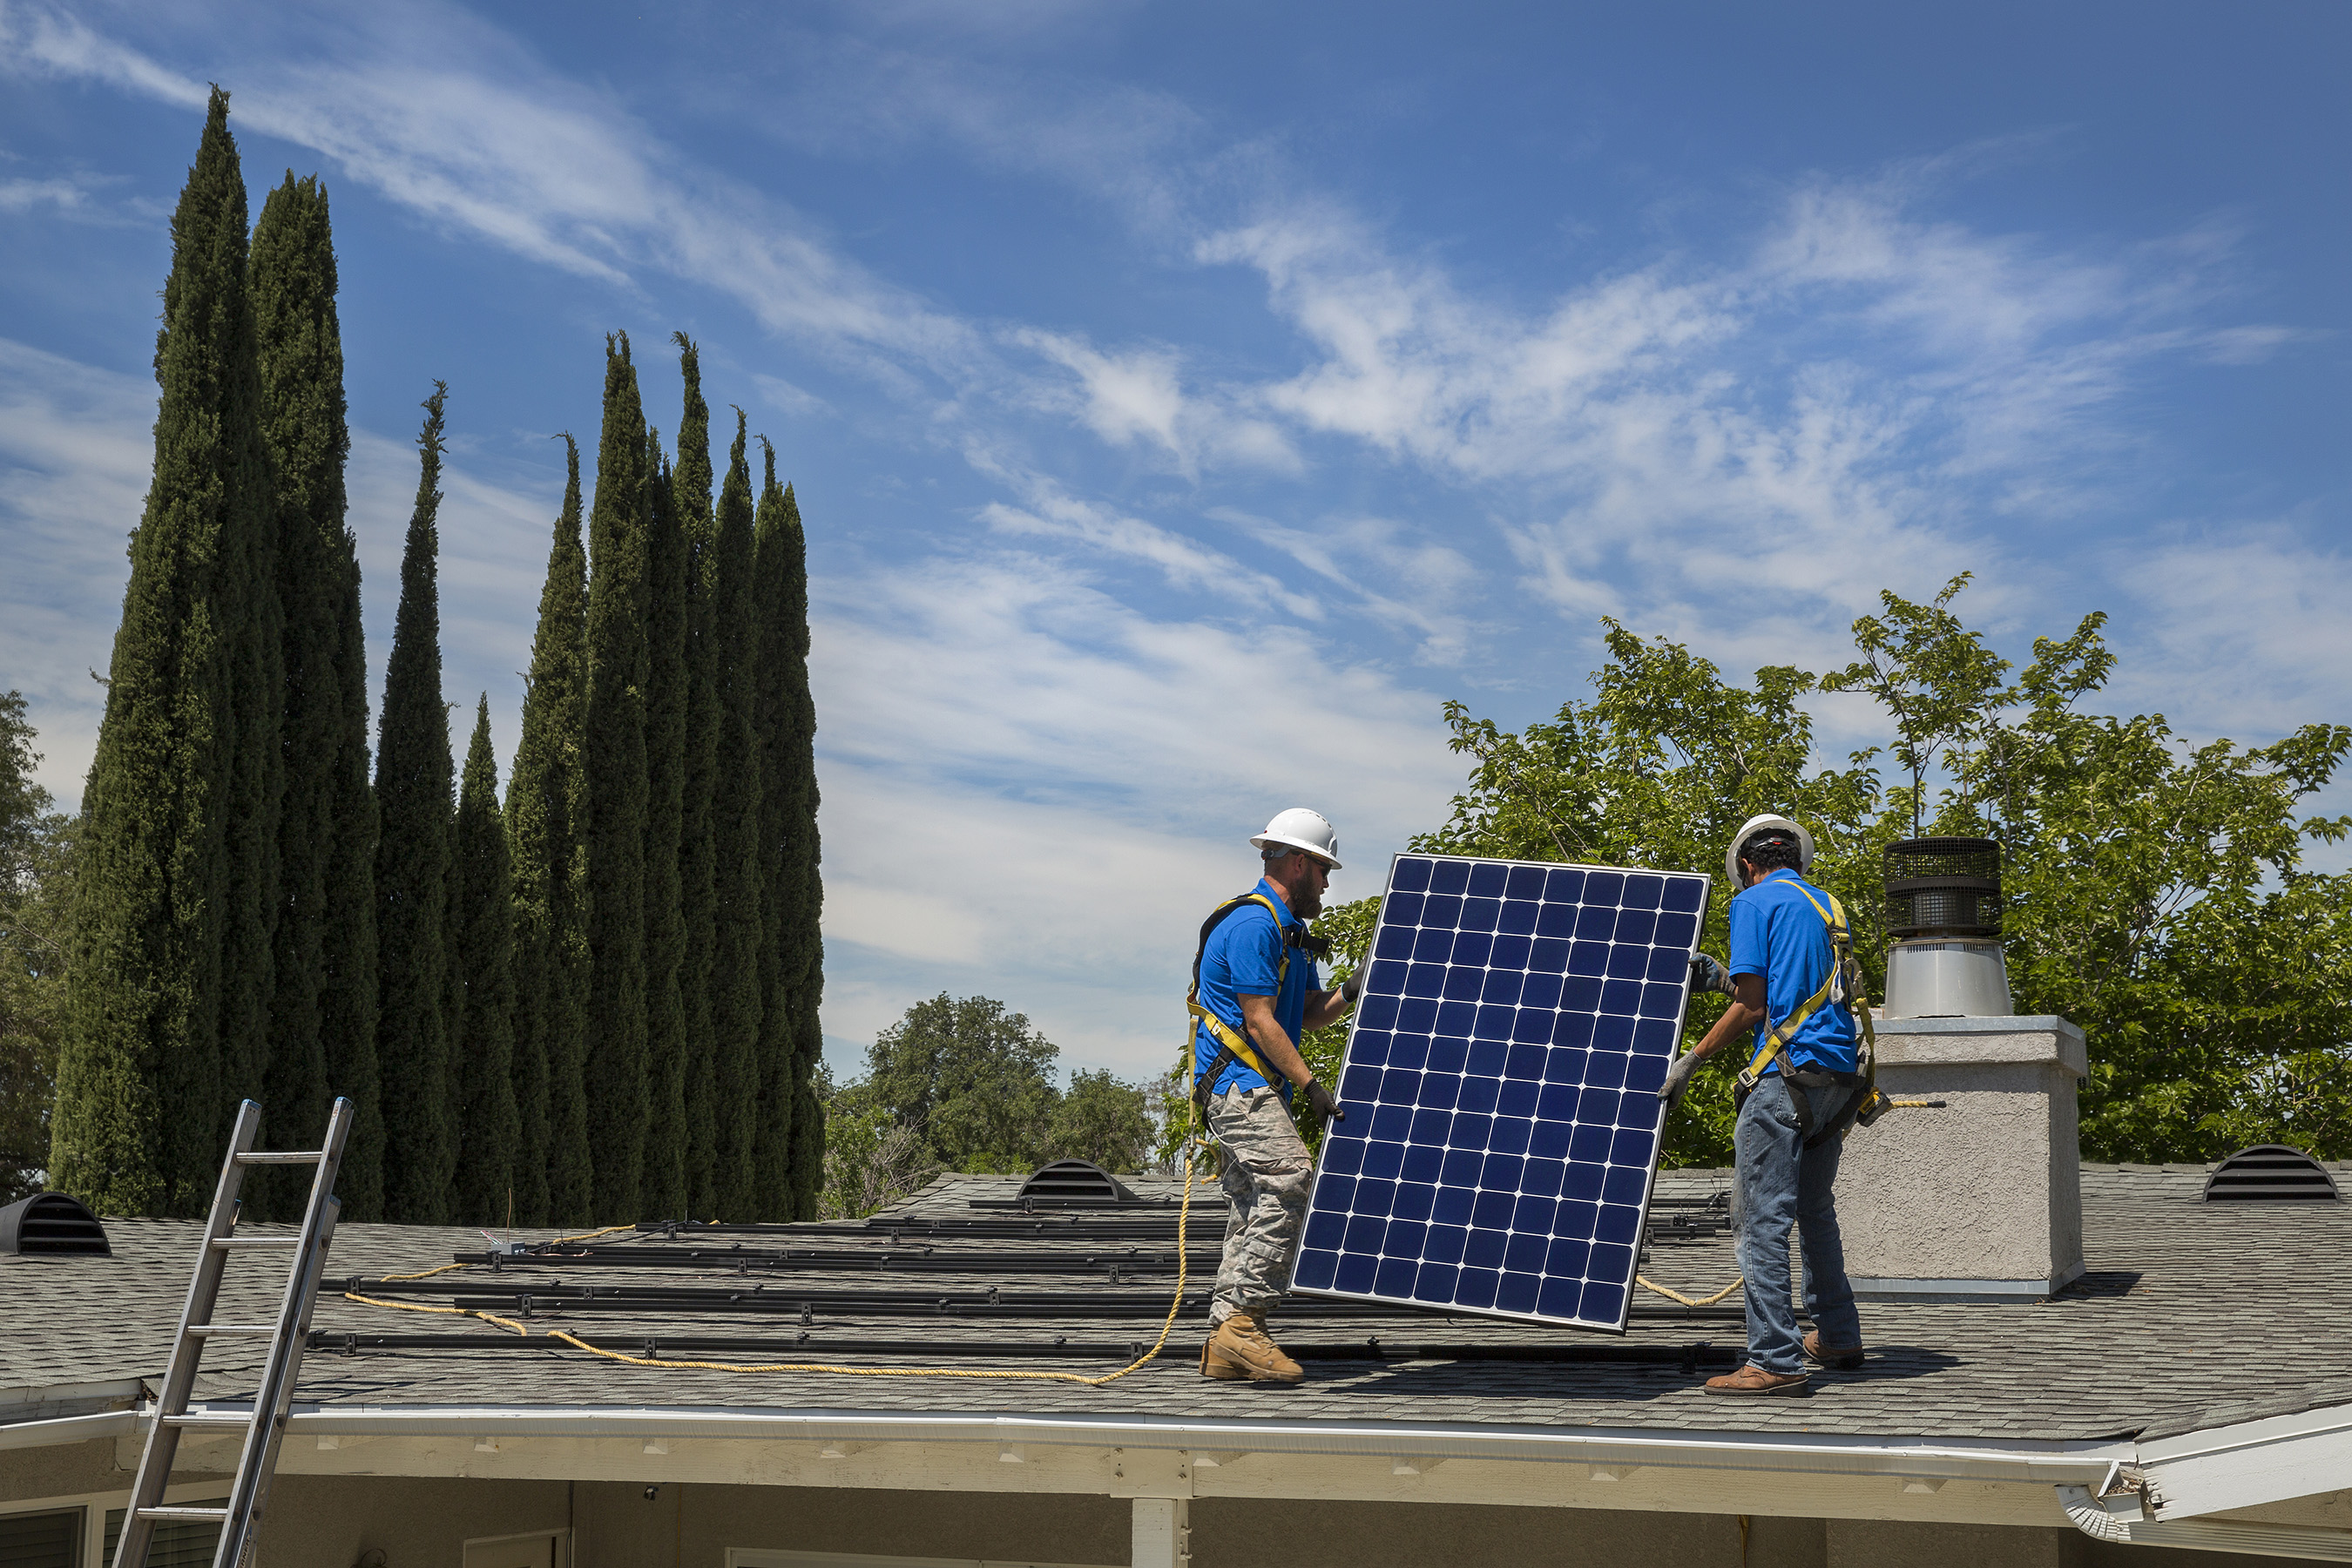 SunPower solar panels are 22.8 percent efficient and produce 45 percent more energy from the same space over the first 25 years.